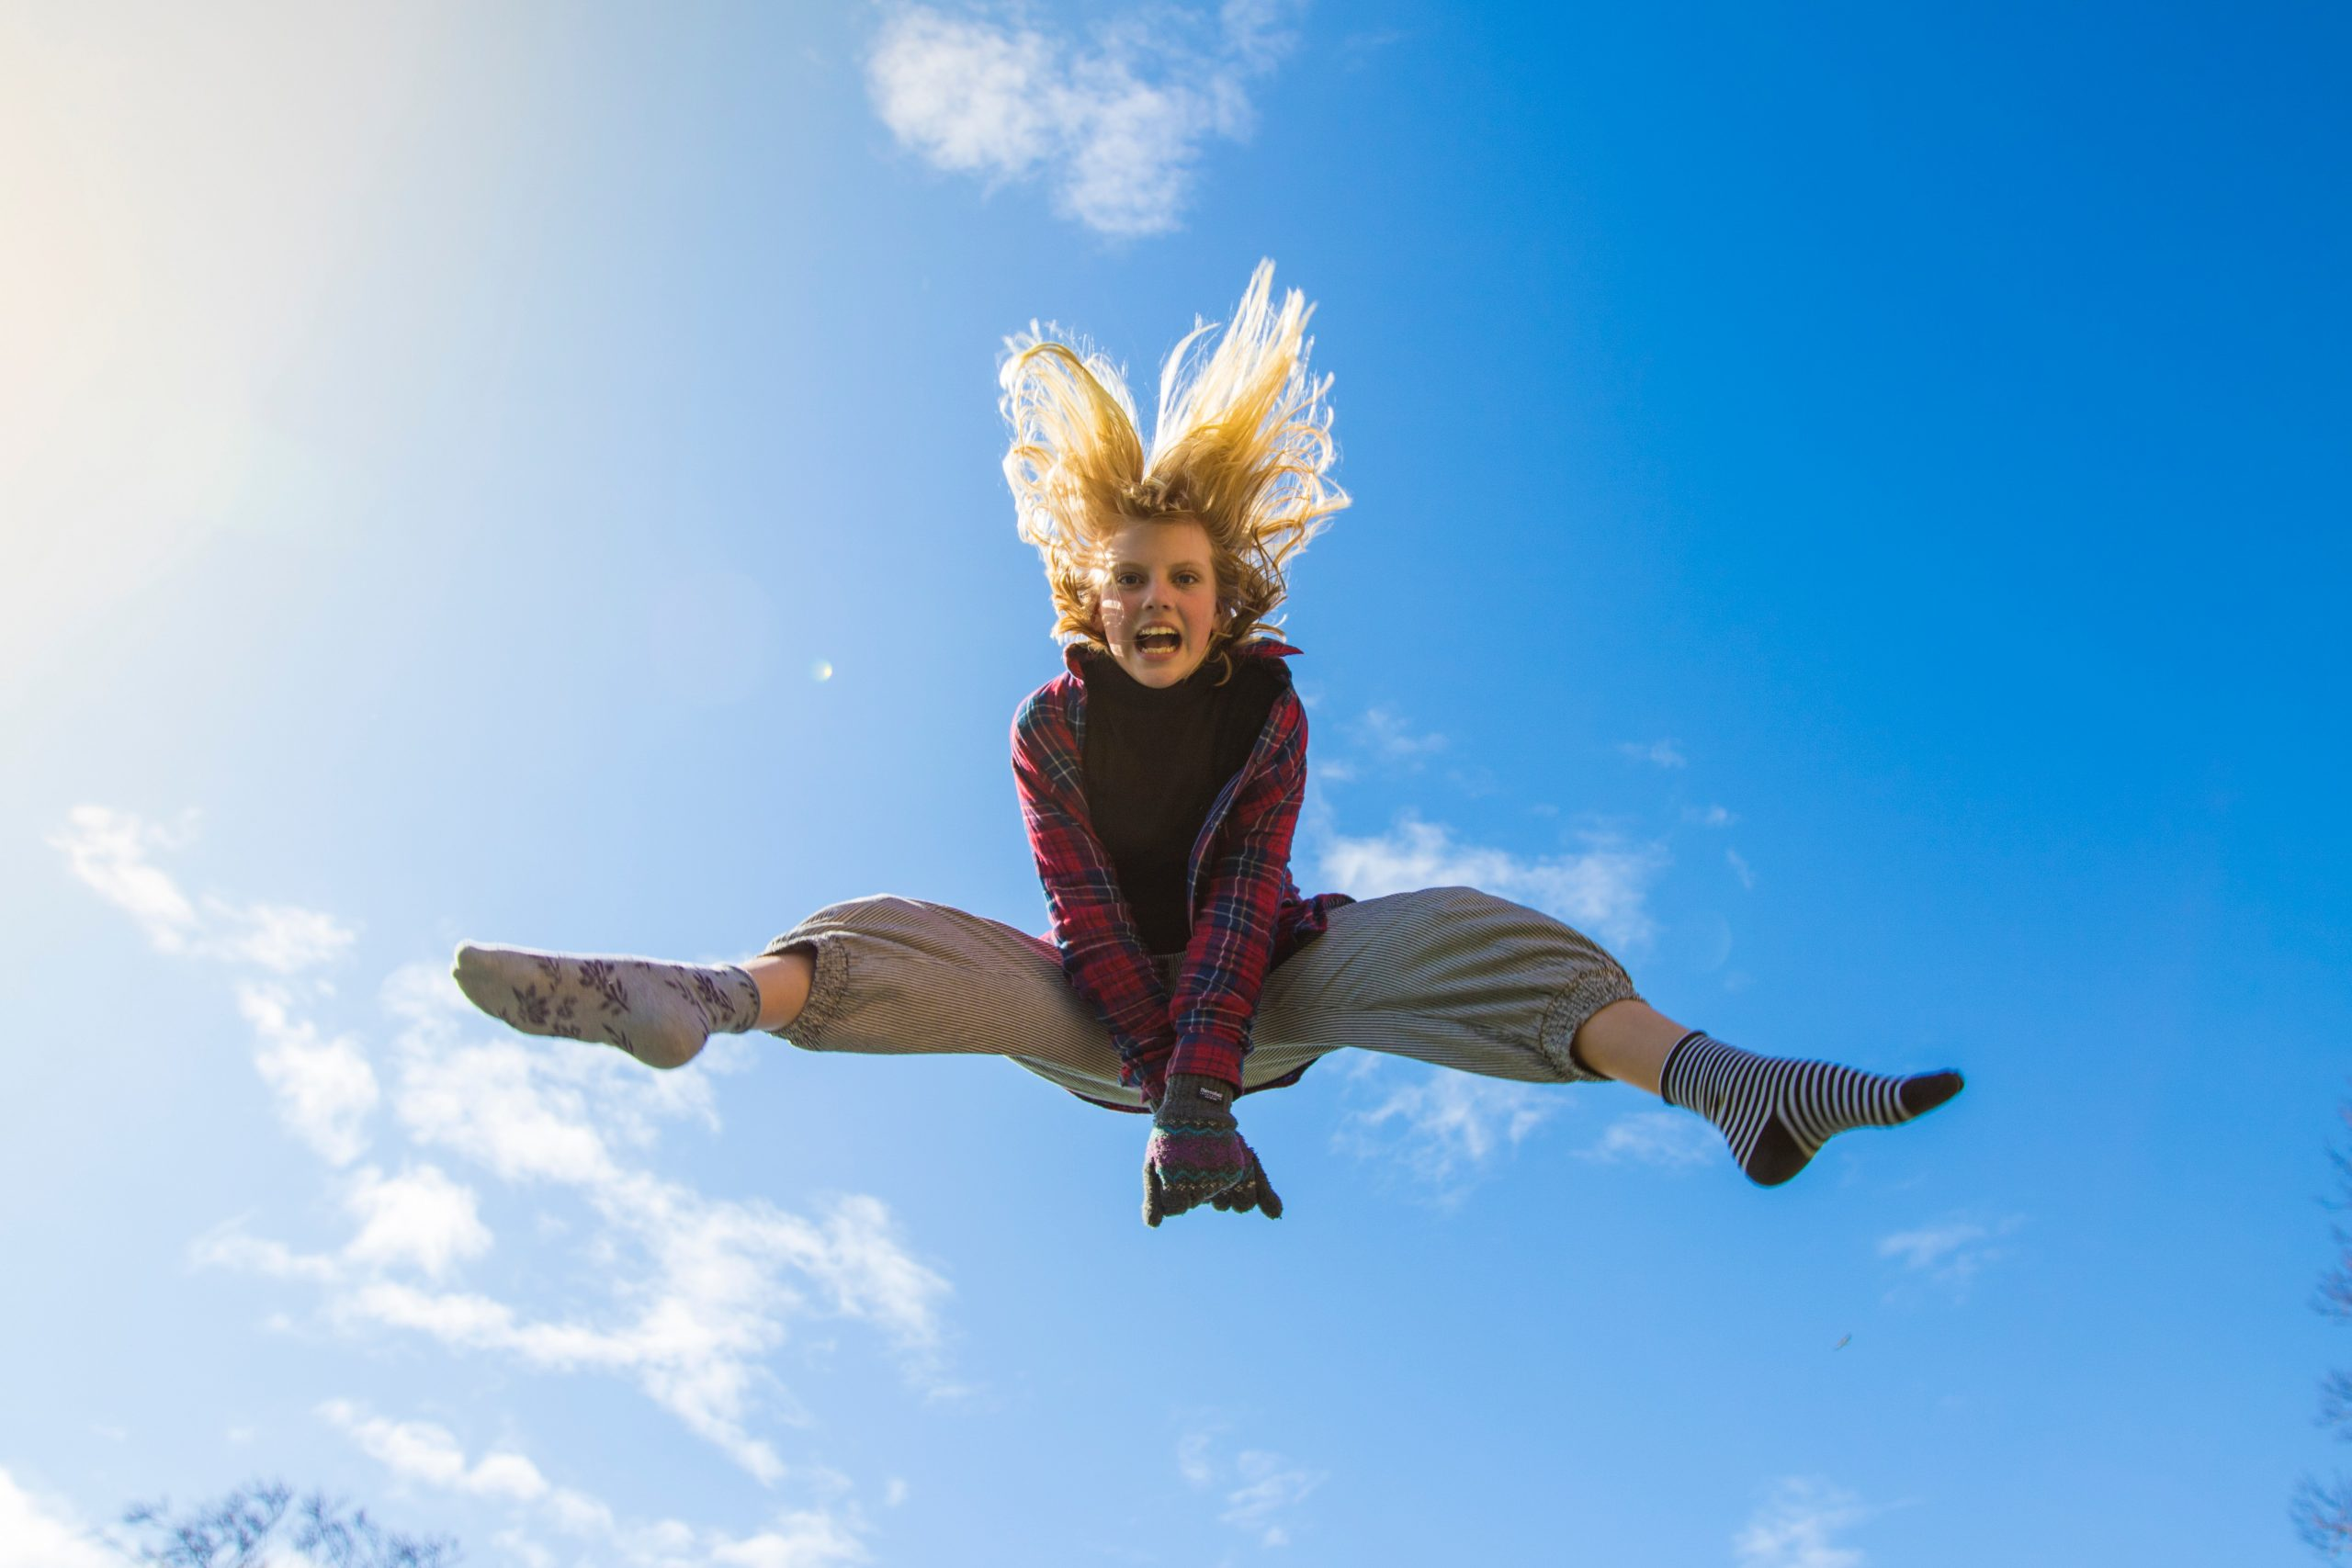 Girl jumping to show energy; supporting energy levels naturally.